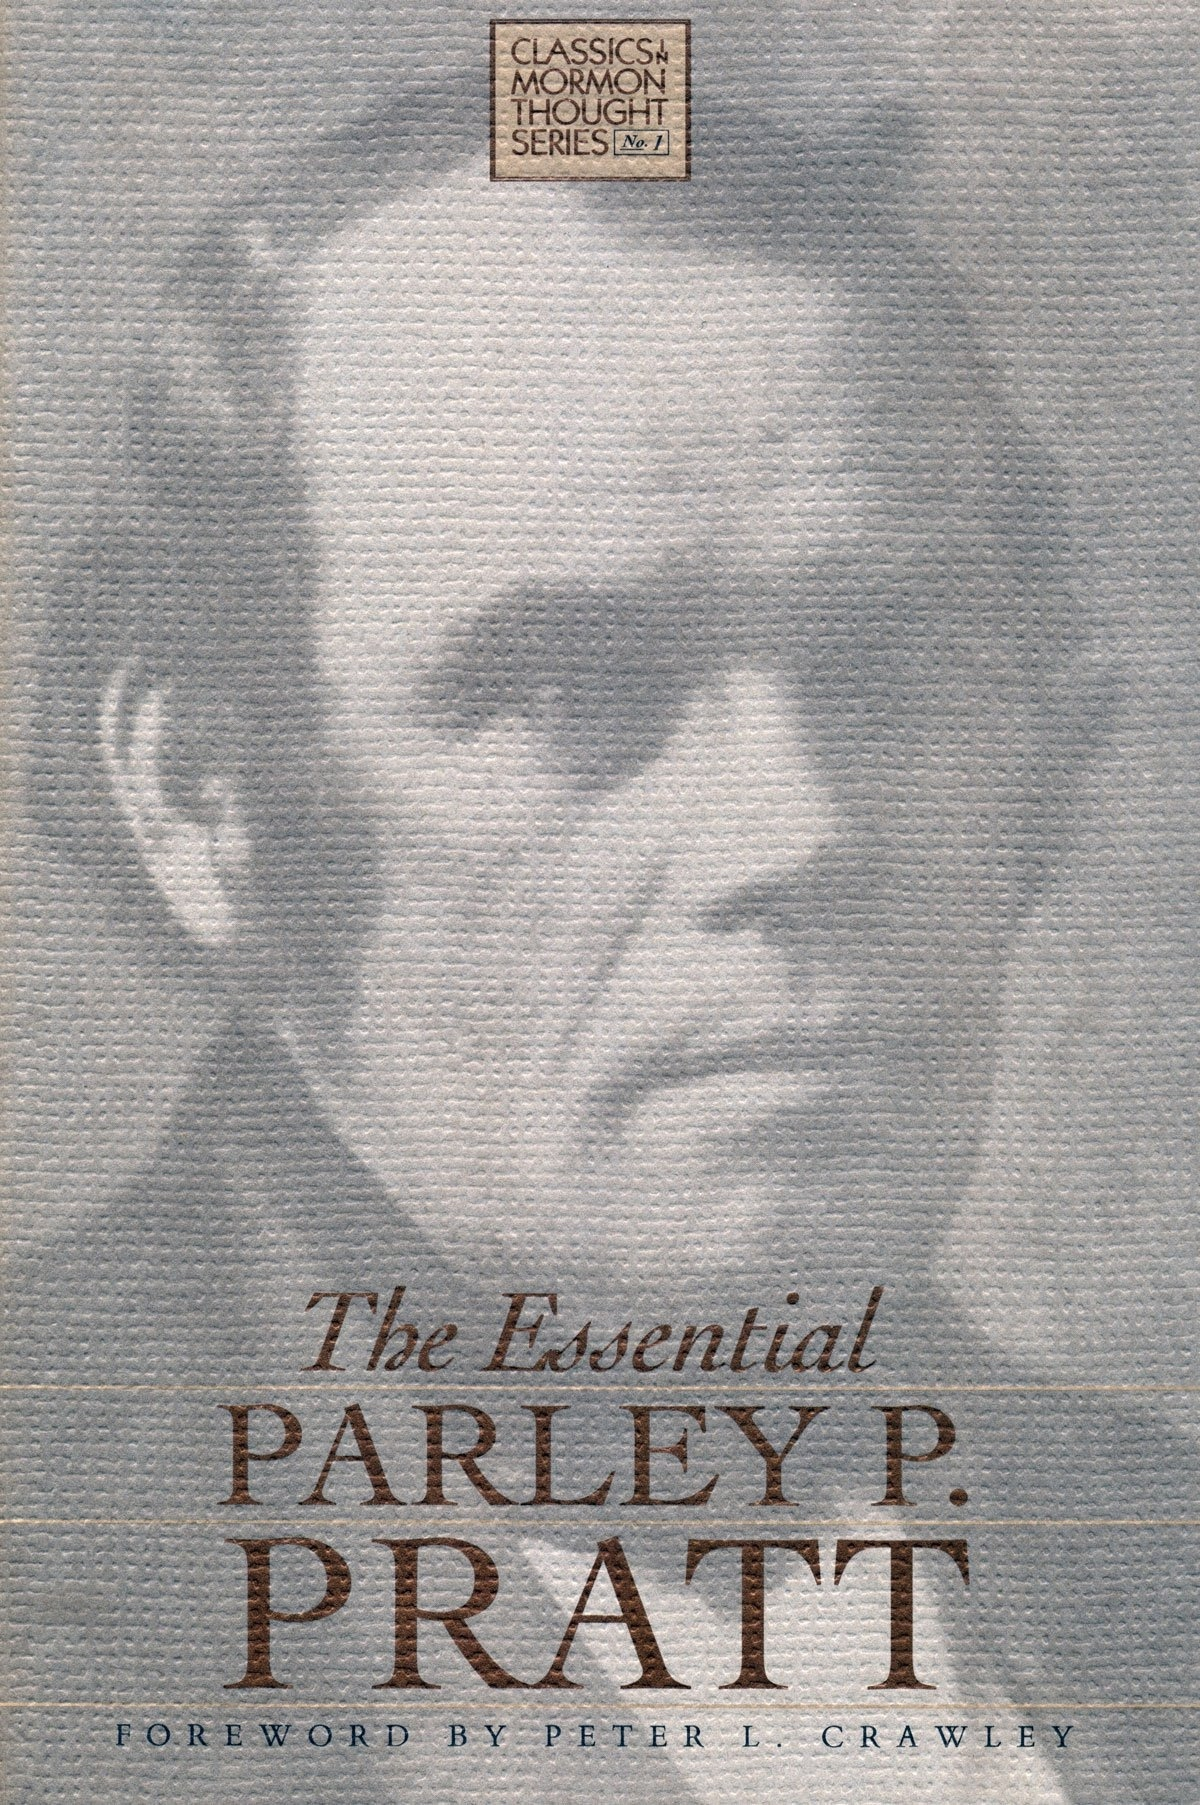 THE ESSENTIAL PARLEY P. PRATT, Crawley, Peter L.